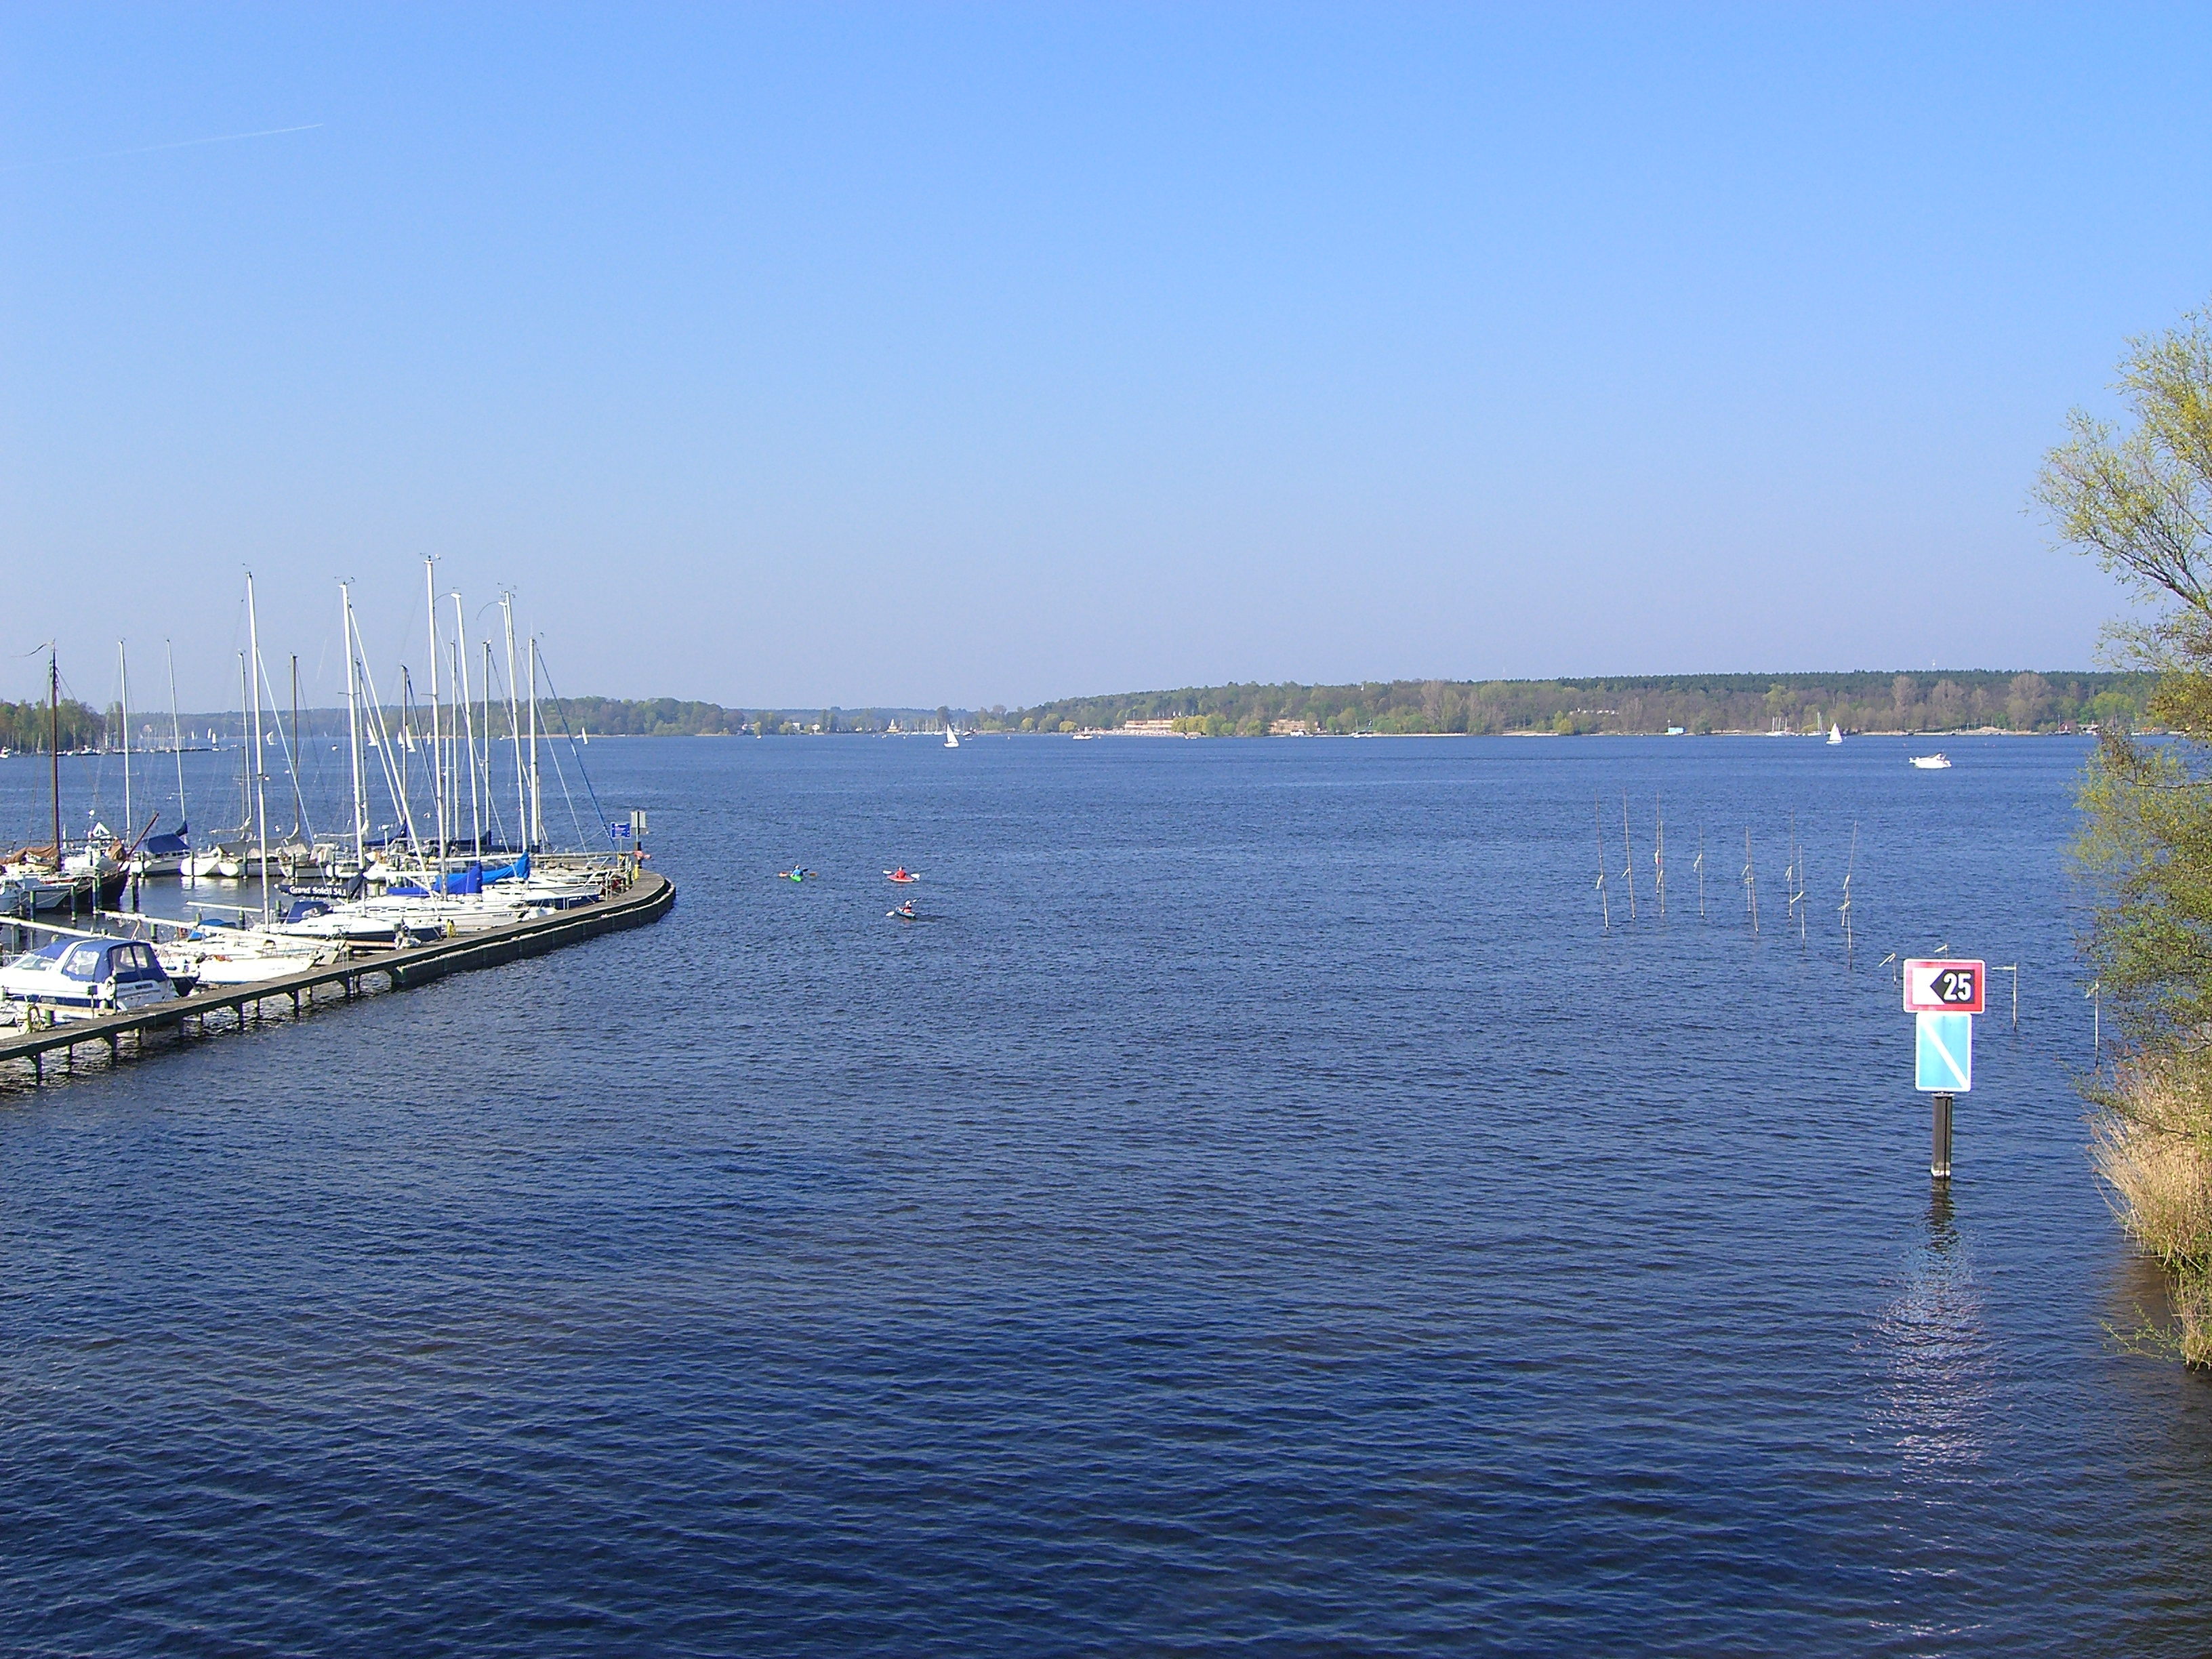 Gro%C3%9Fer_Wannsee on News Page